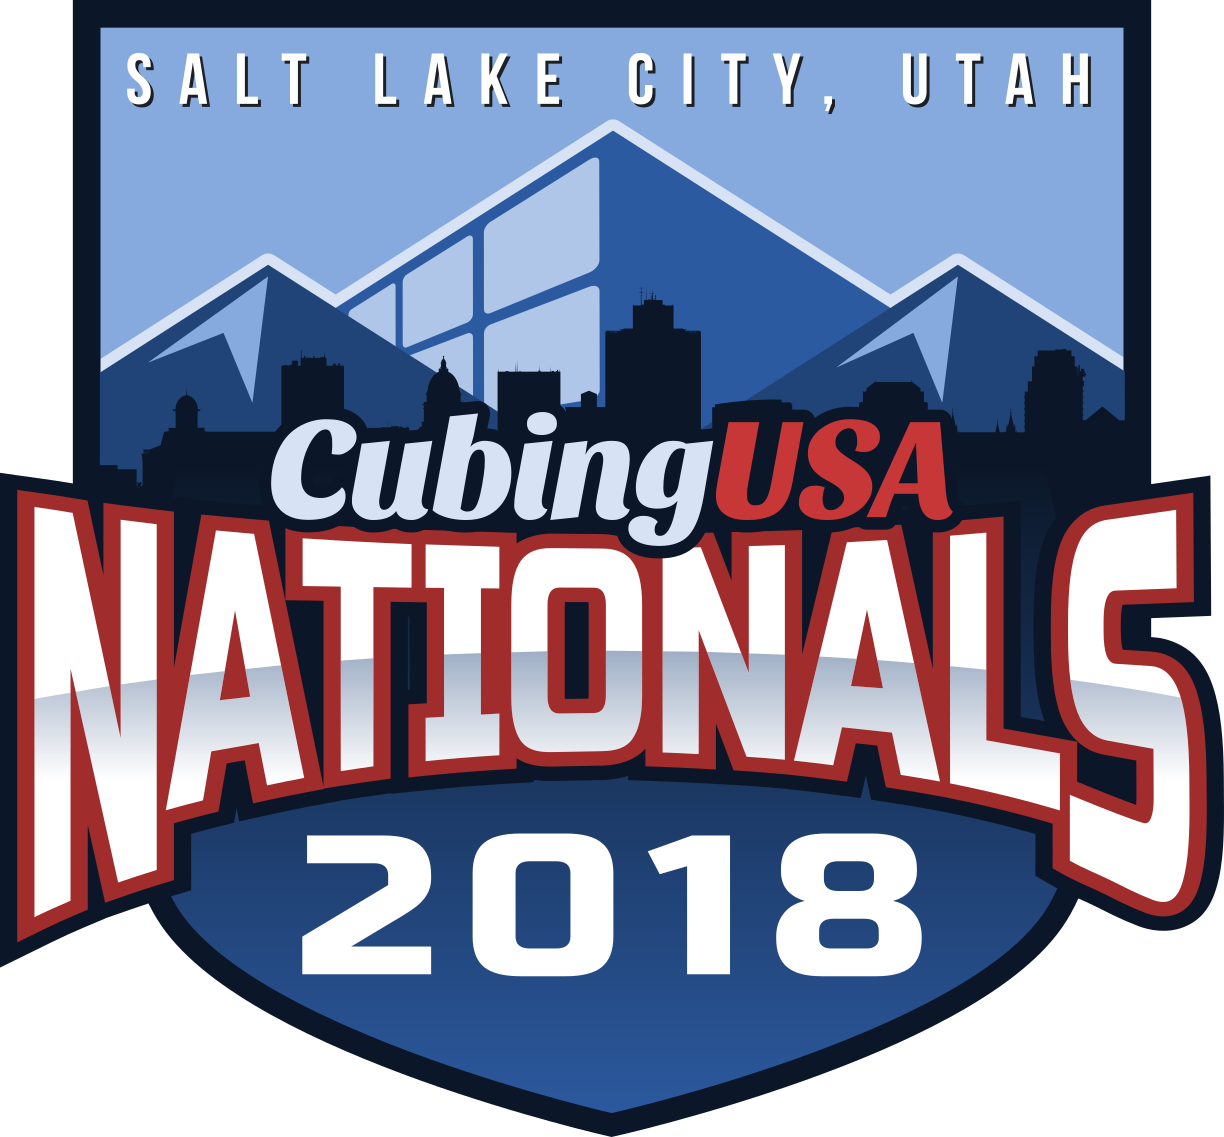 CubingUSA Nationals 2018